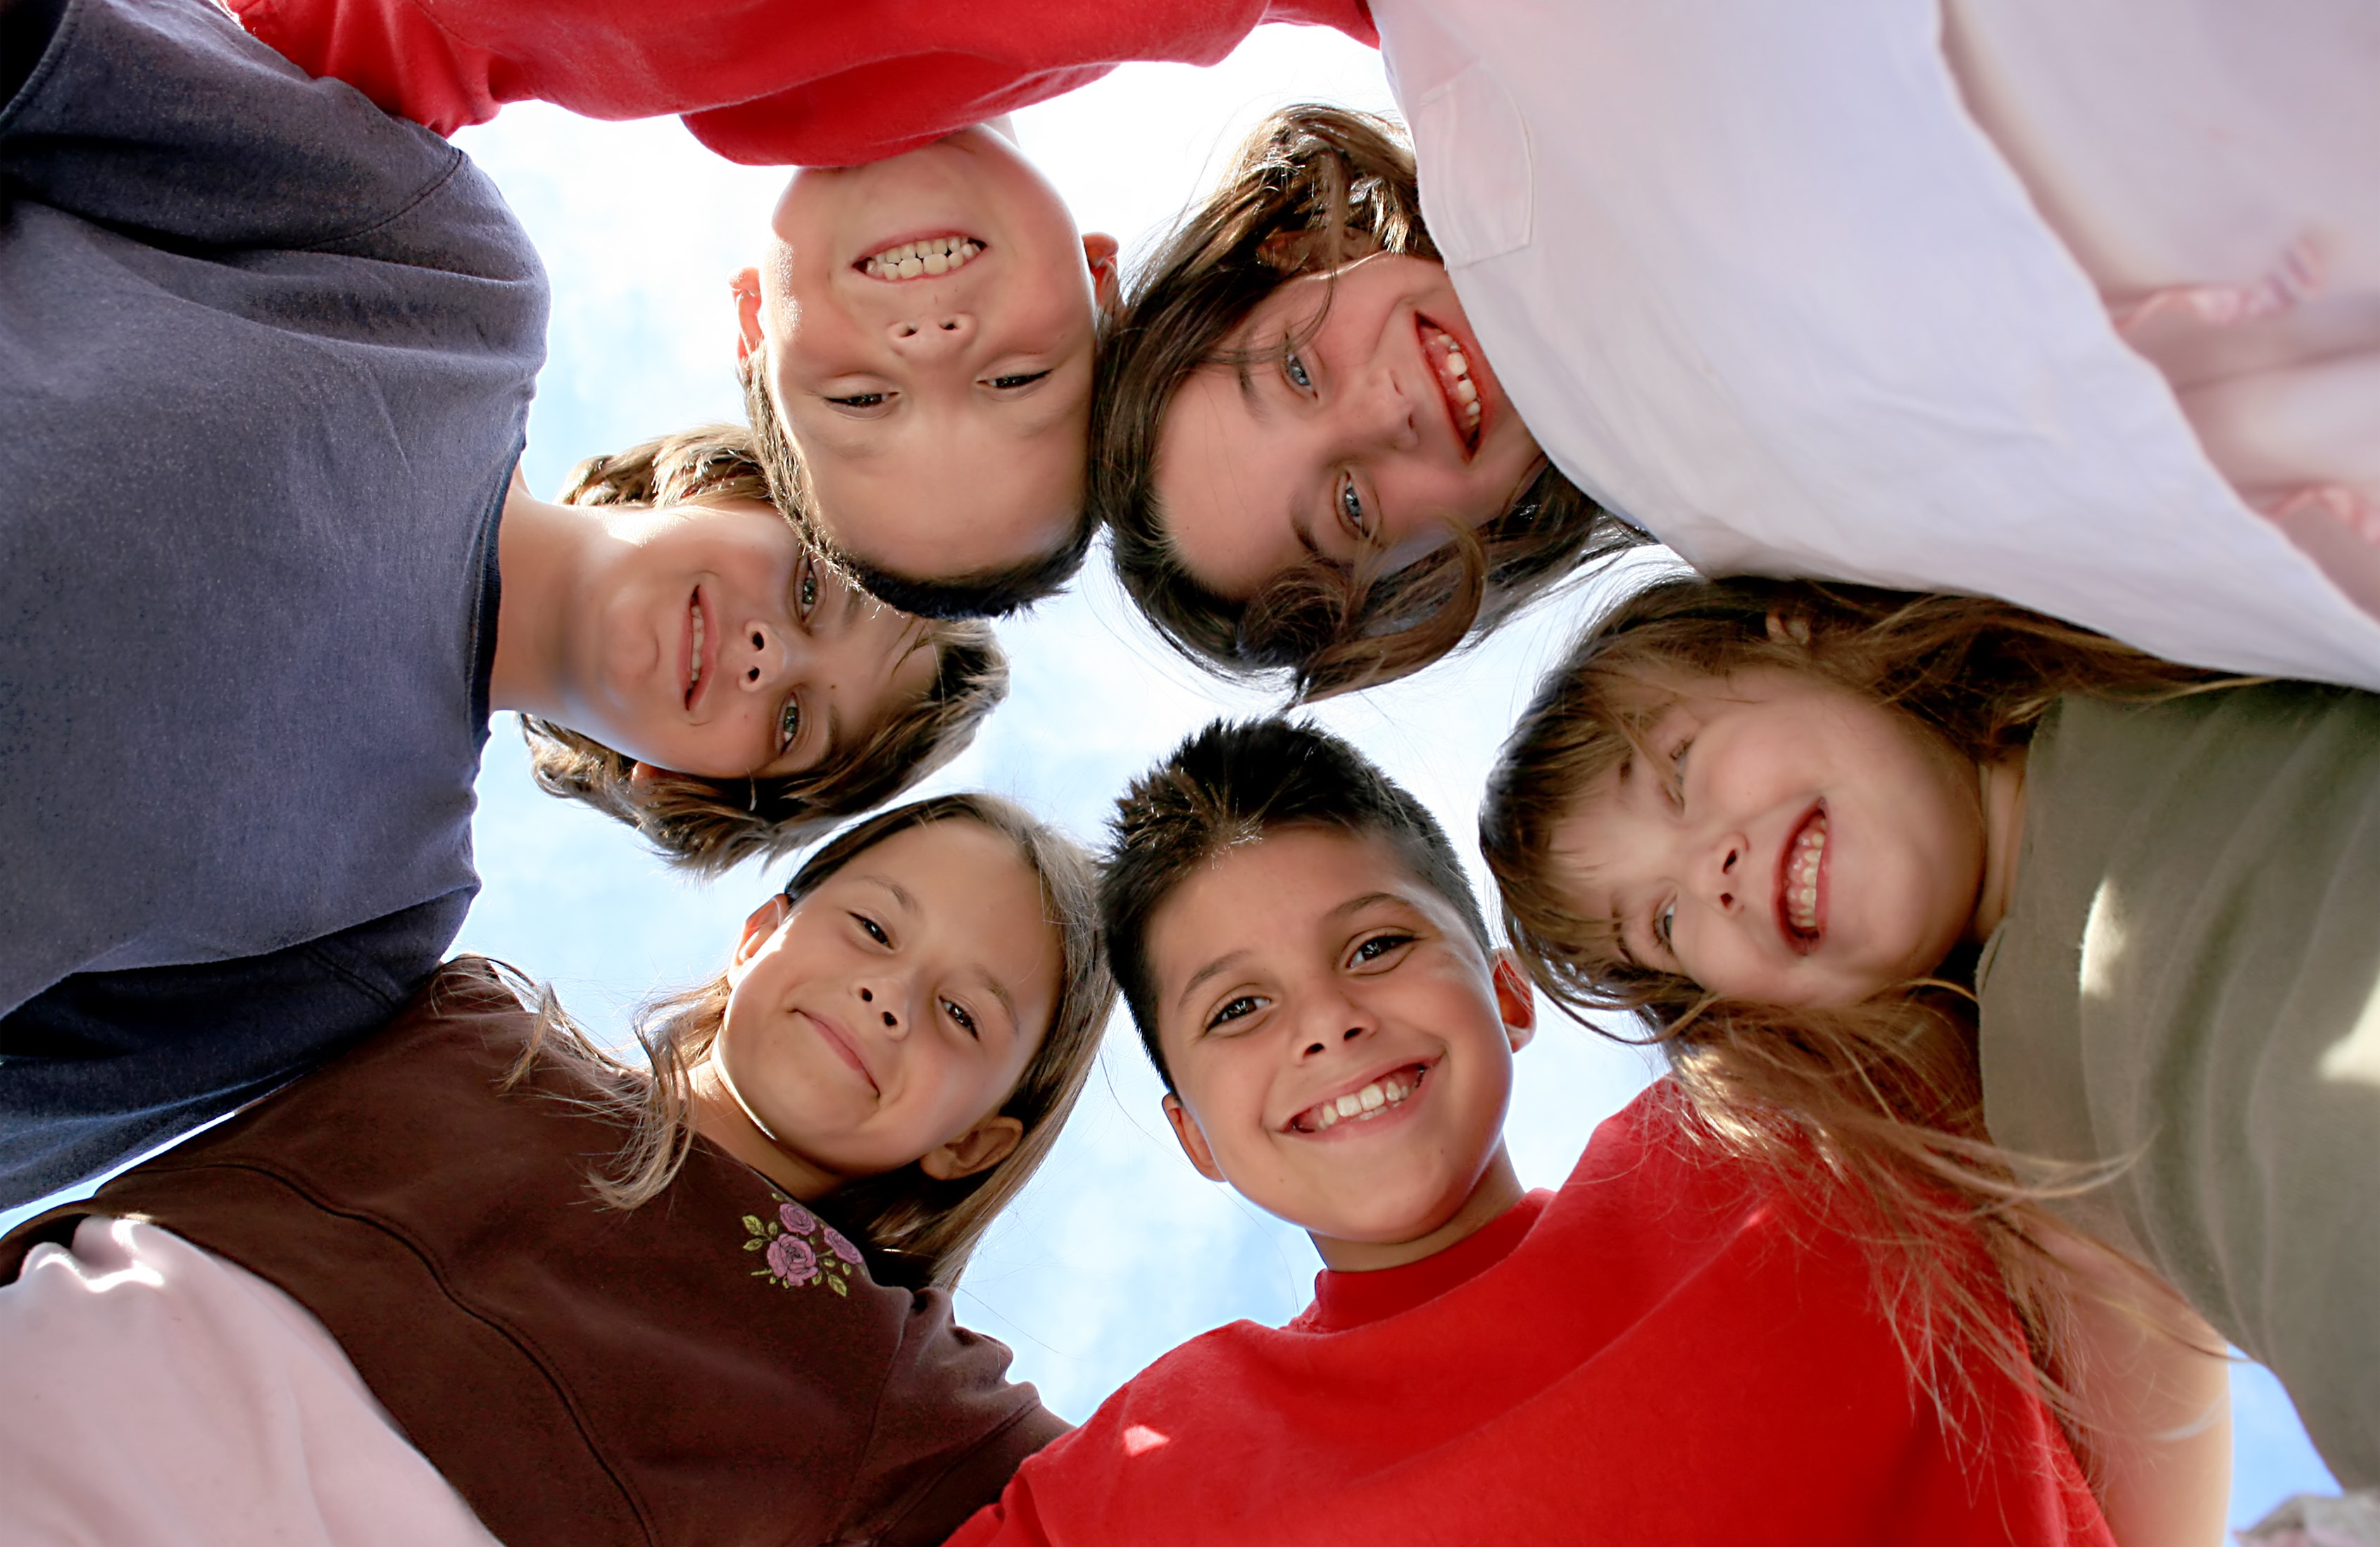 573255-happy-healthy-kids-hanging-out.jpg